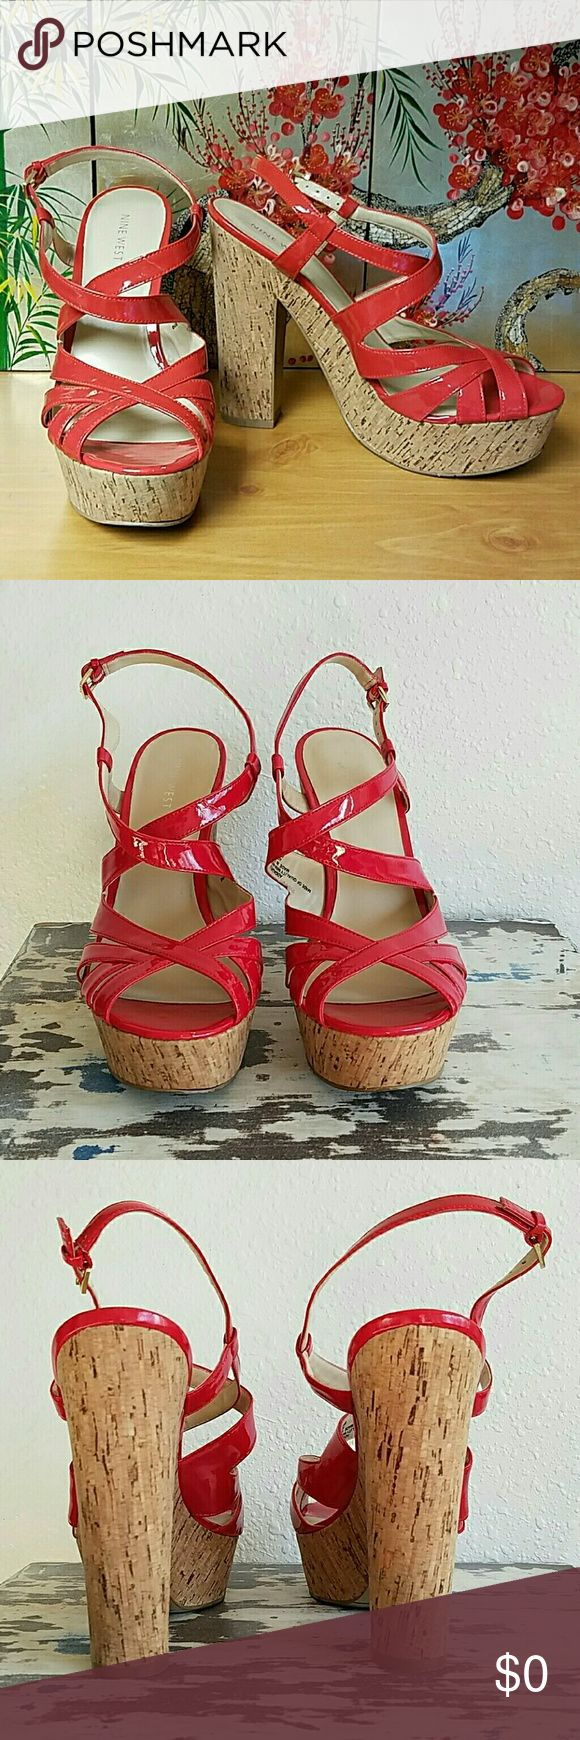 """Nine West """"Addagirl"""" Sandals Nine West """"Addagirl"""" Strapy Heeled/Platform Sandals Color: Red (w/ pink orange undertone) Features: 5 1/2"""" Heel w/ 2"""" Platform Ankle strap w/ adjustable buckle Cork Heels Slingback Backs Faux Shiny Patent Leather, all man made material Minor wear to heels & soles. ONLY defect I see is on the right shoe, the """"sole"""" has separated from the base (see last pic). I put some glue in there, but a Cobbler could easily glue it properly. No box.  ✔Questions ✔Offers 🚫No…"""